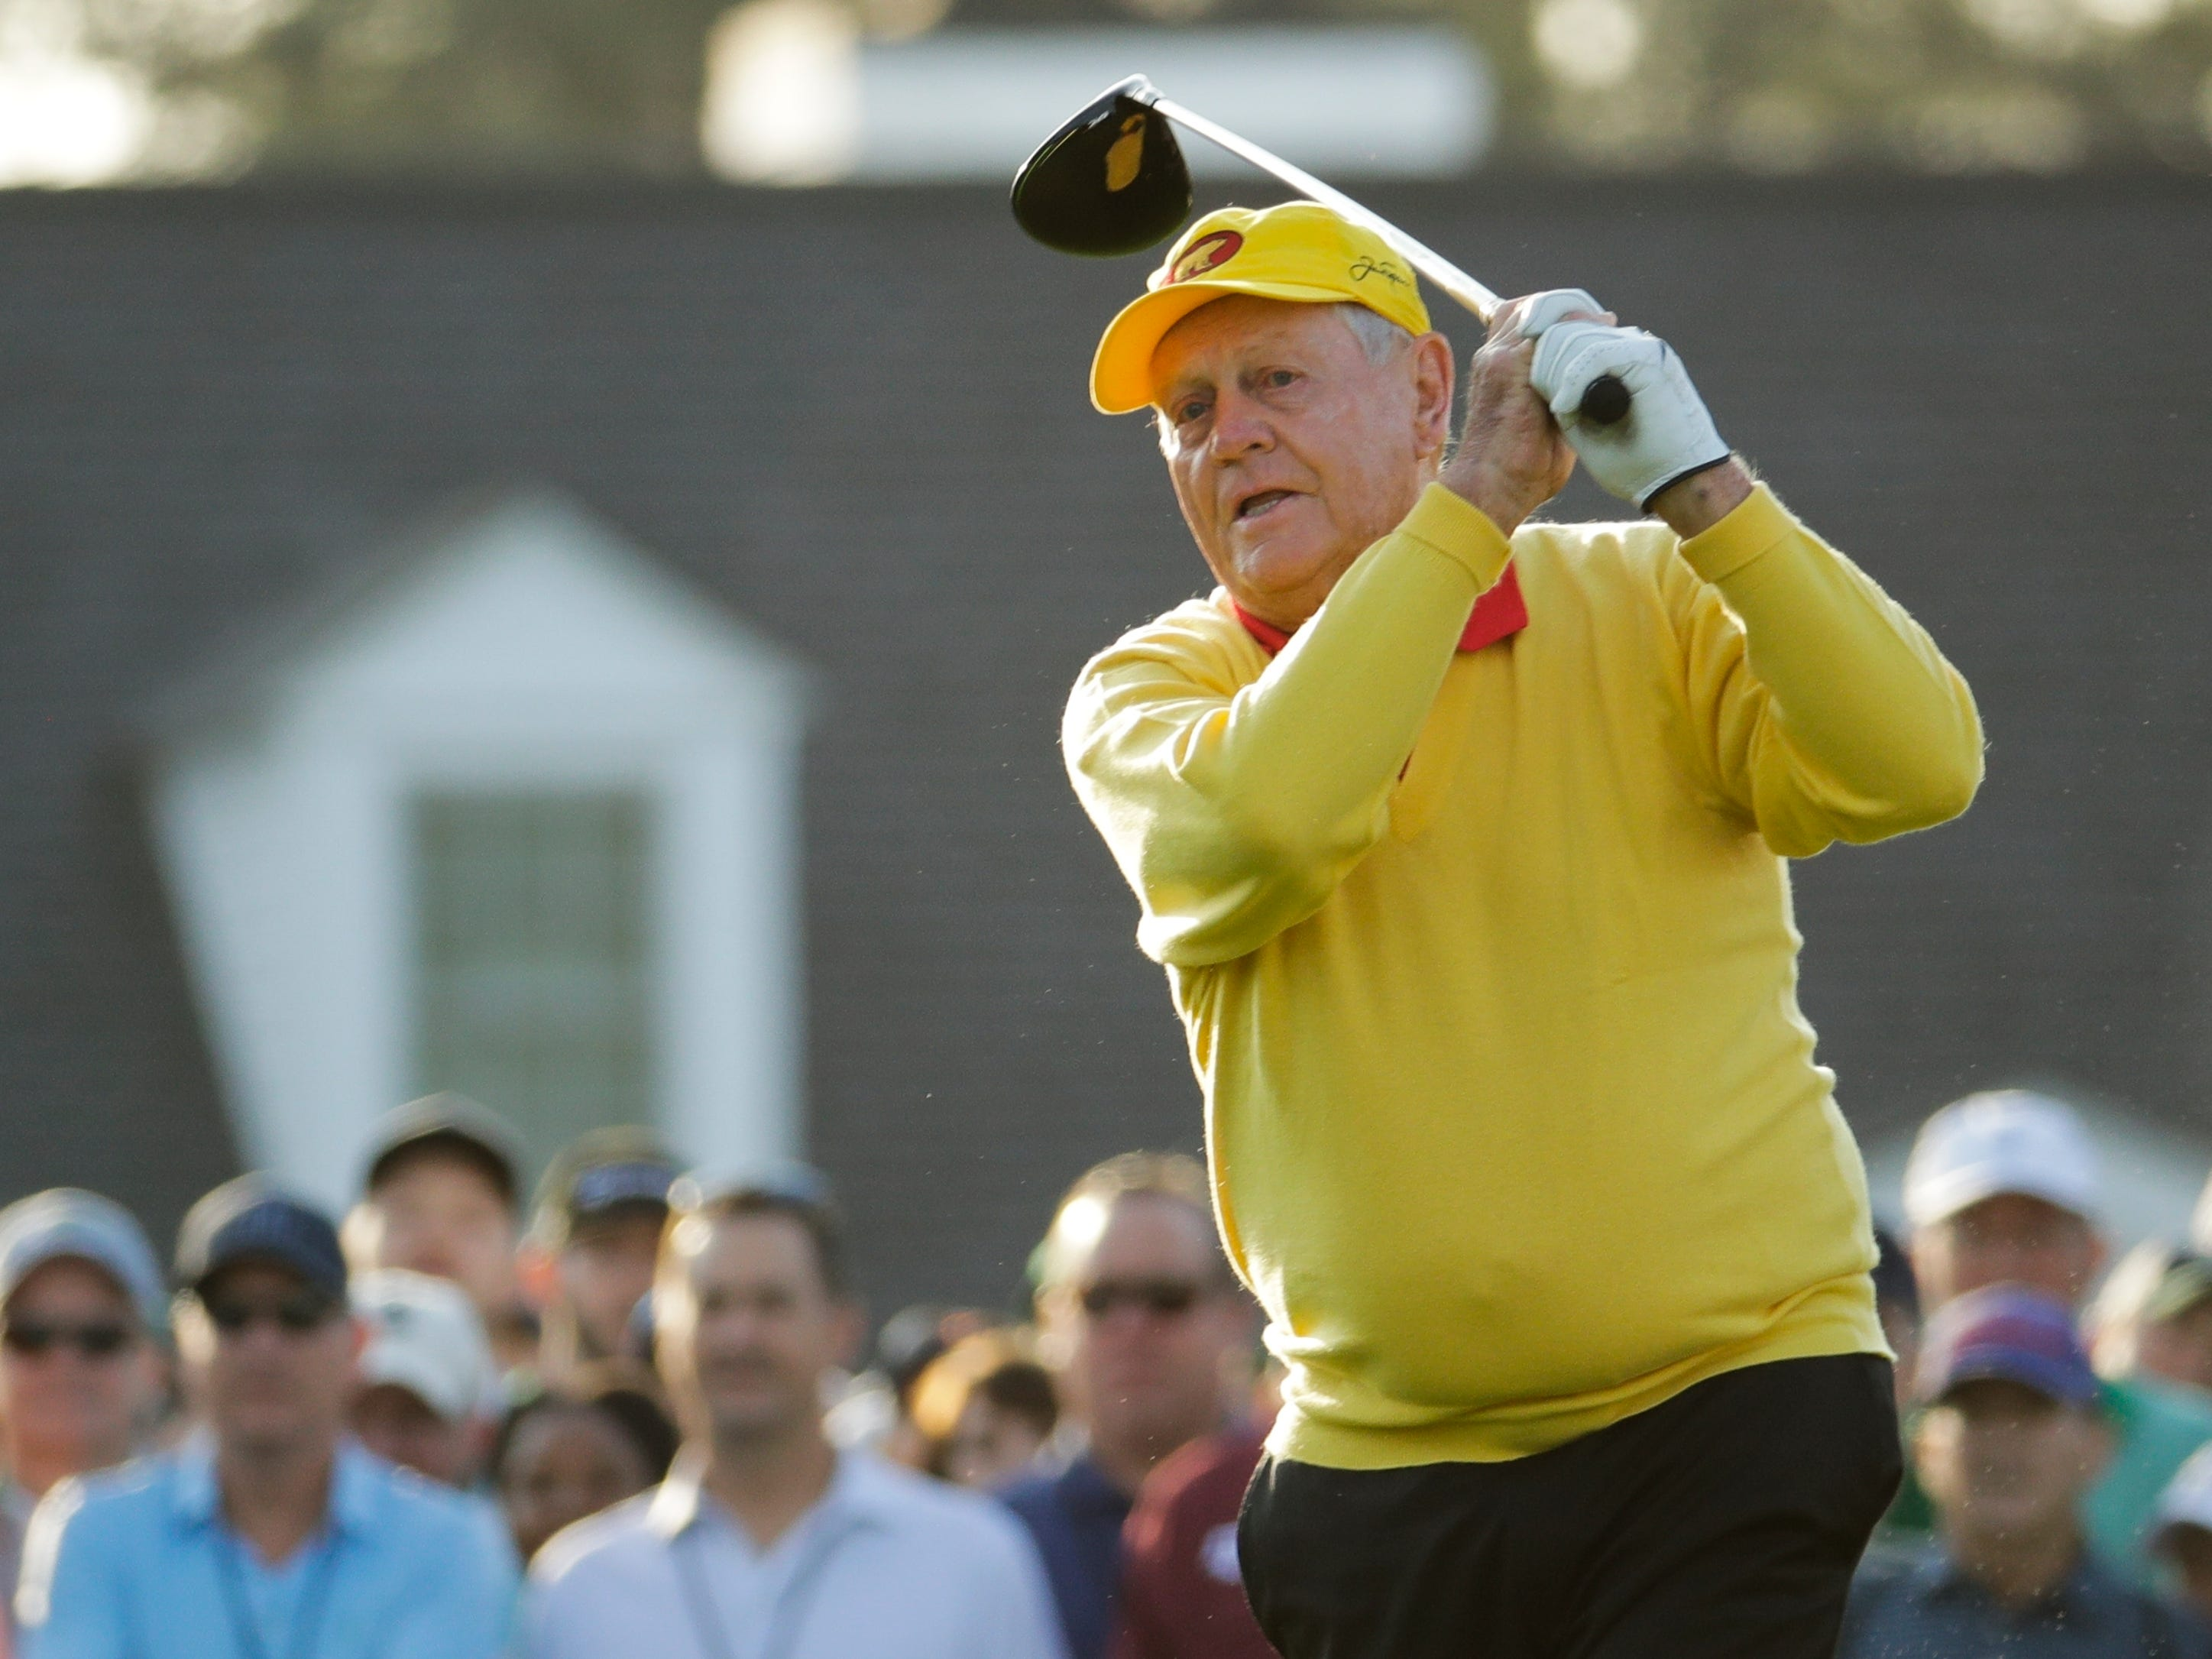 Jack Nicklaus hits a ceremonial tee shot on the first hole.